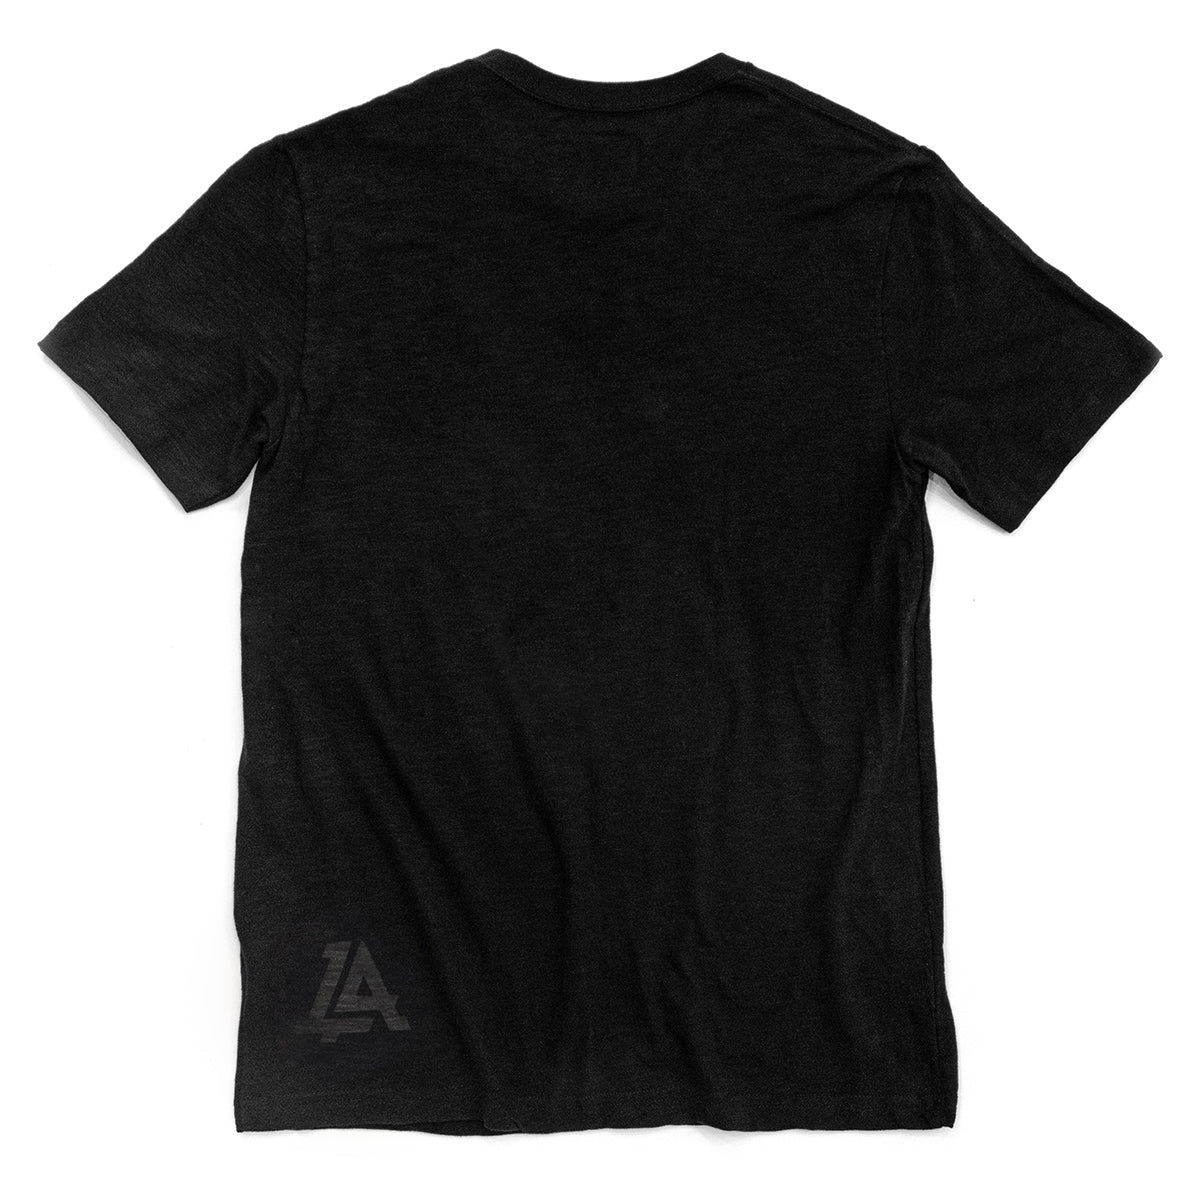 Lost Art Canada - black on black lost monogram tee back view